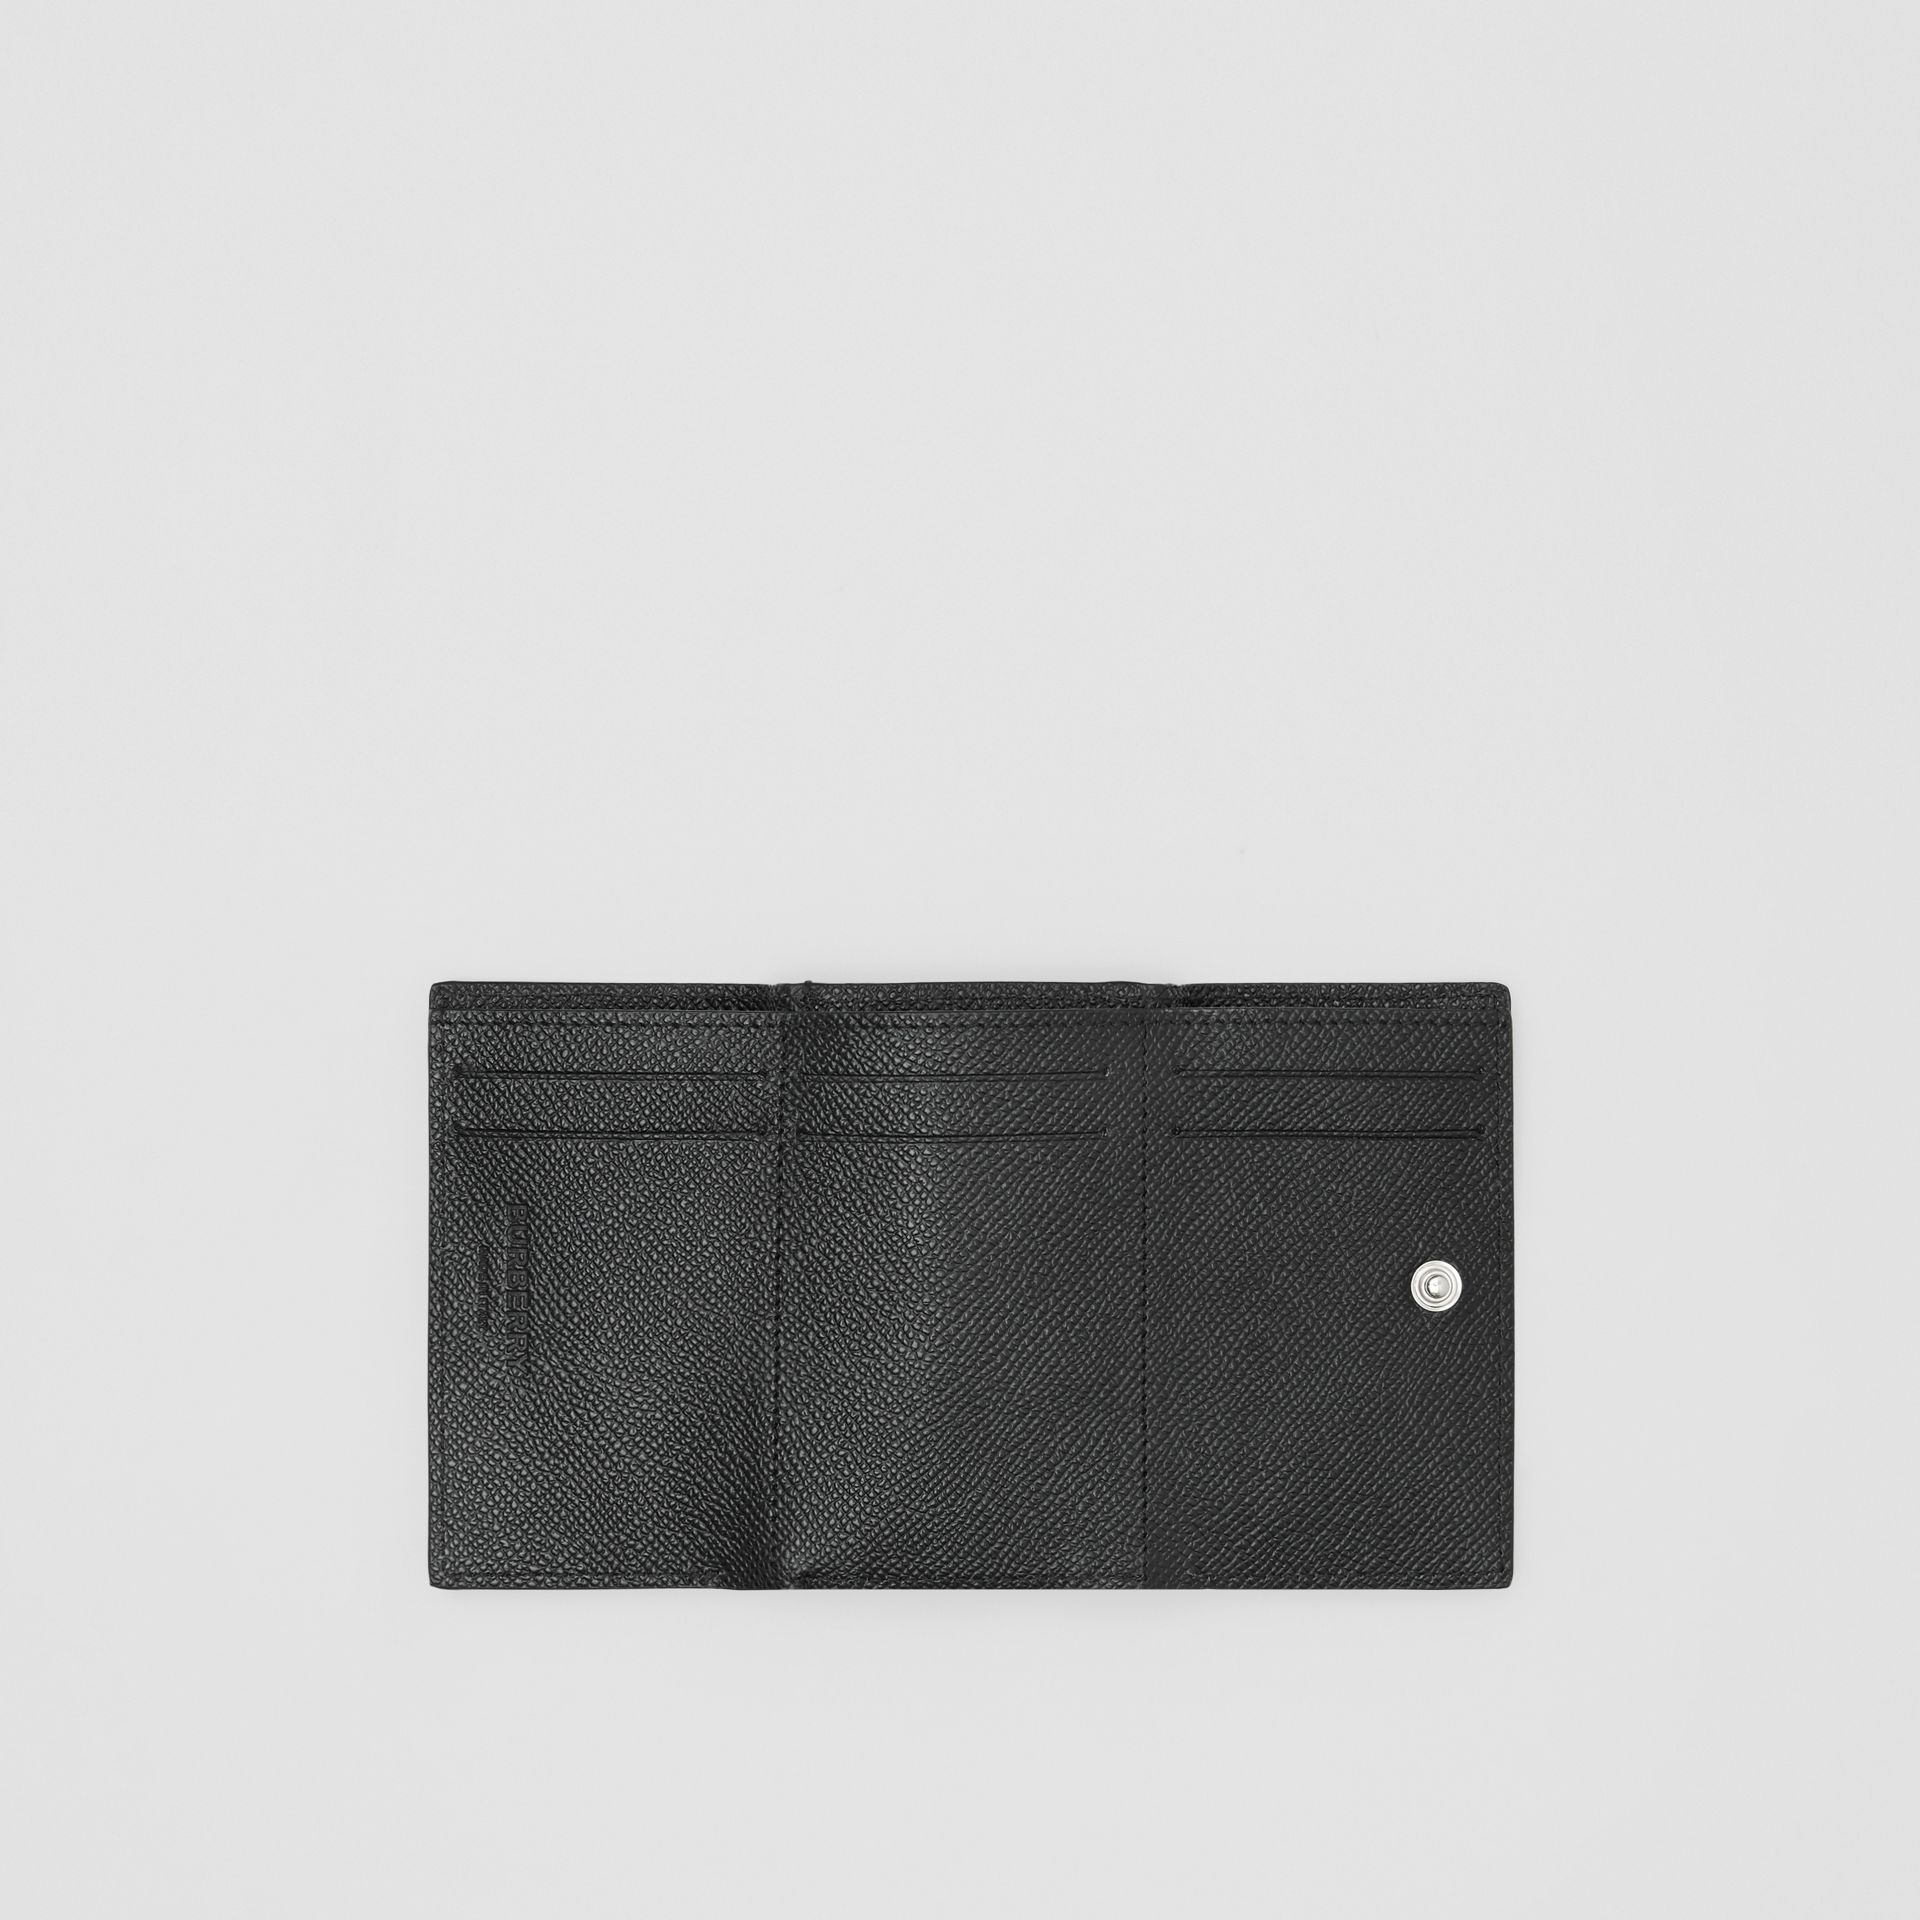 Small Grainy Leather Folding Wallet in Black - Men | Burberry - gallery image 2